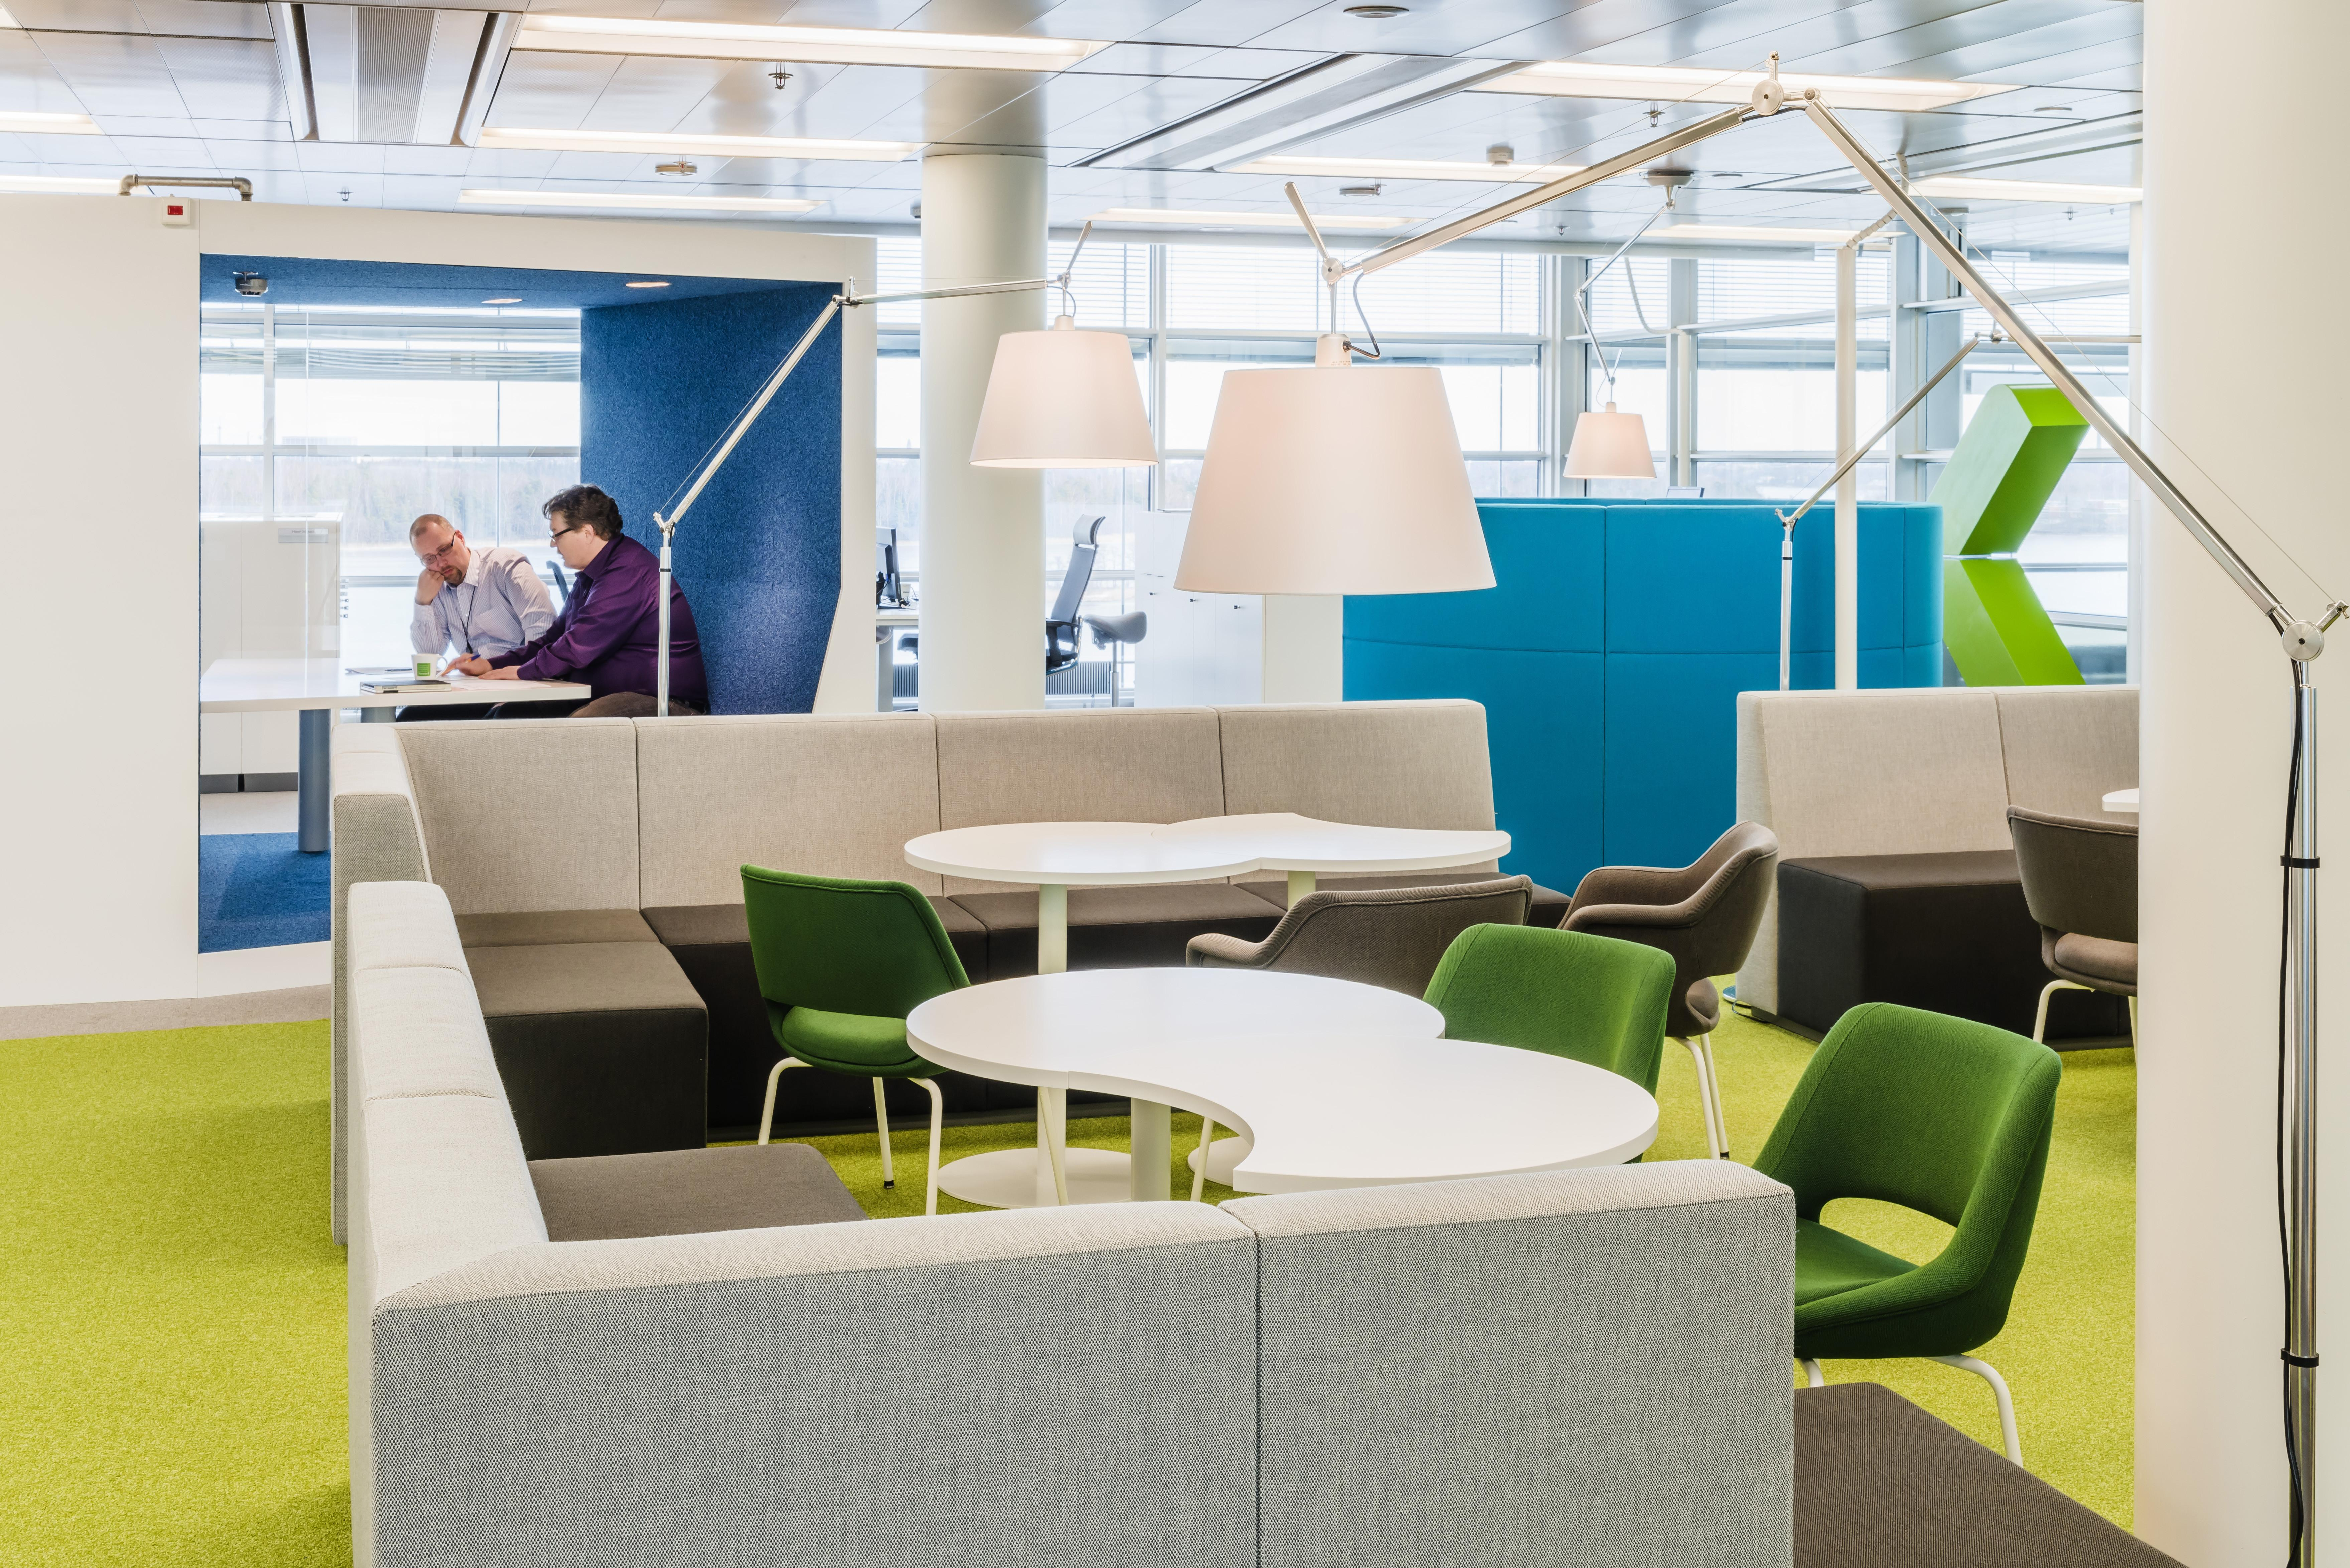 Acoustics Study Into Furniture Effectively Reduces Office